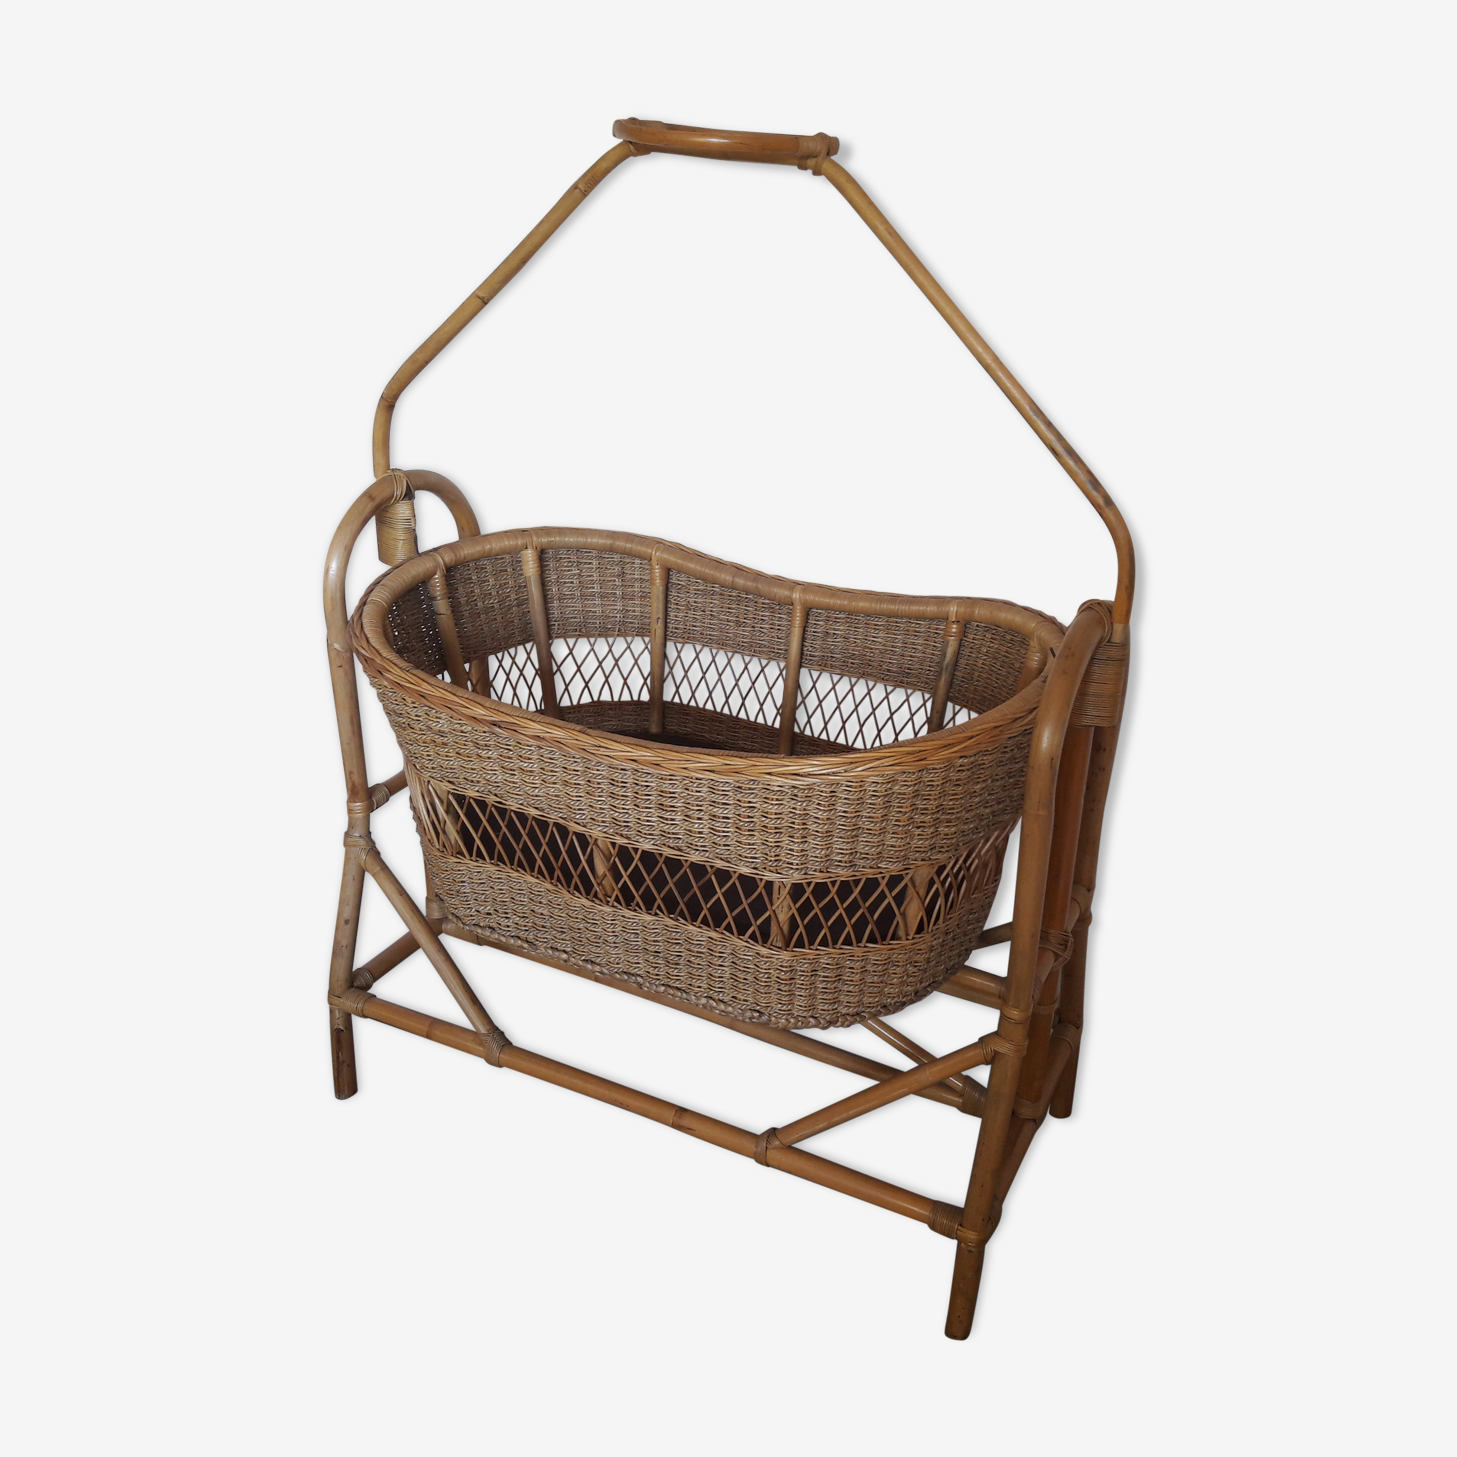 Bamboo and rattan cradle